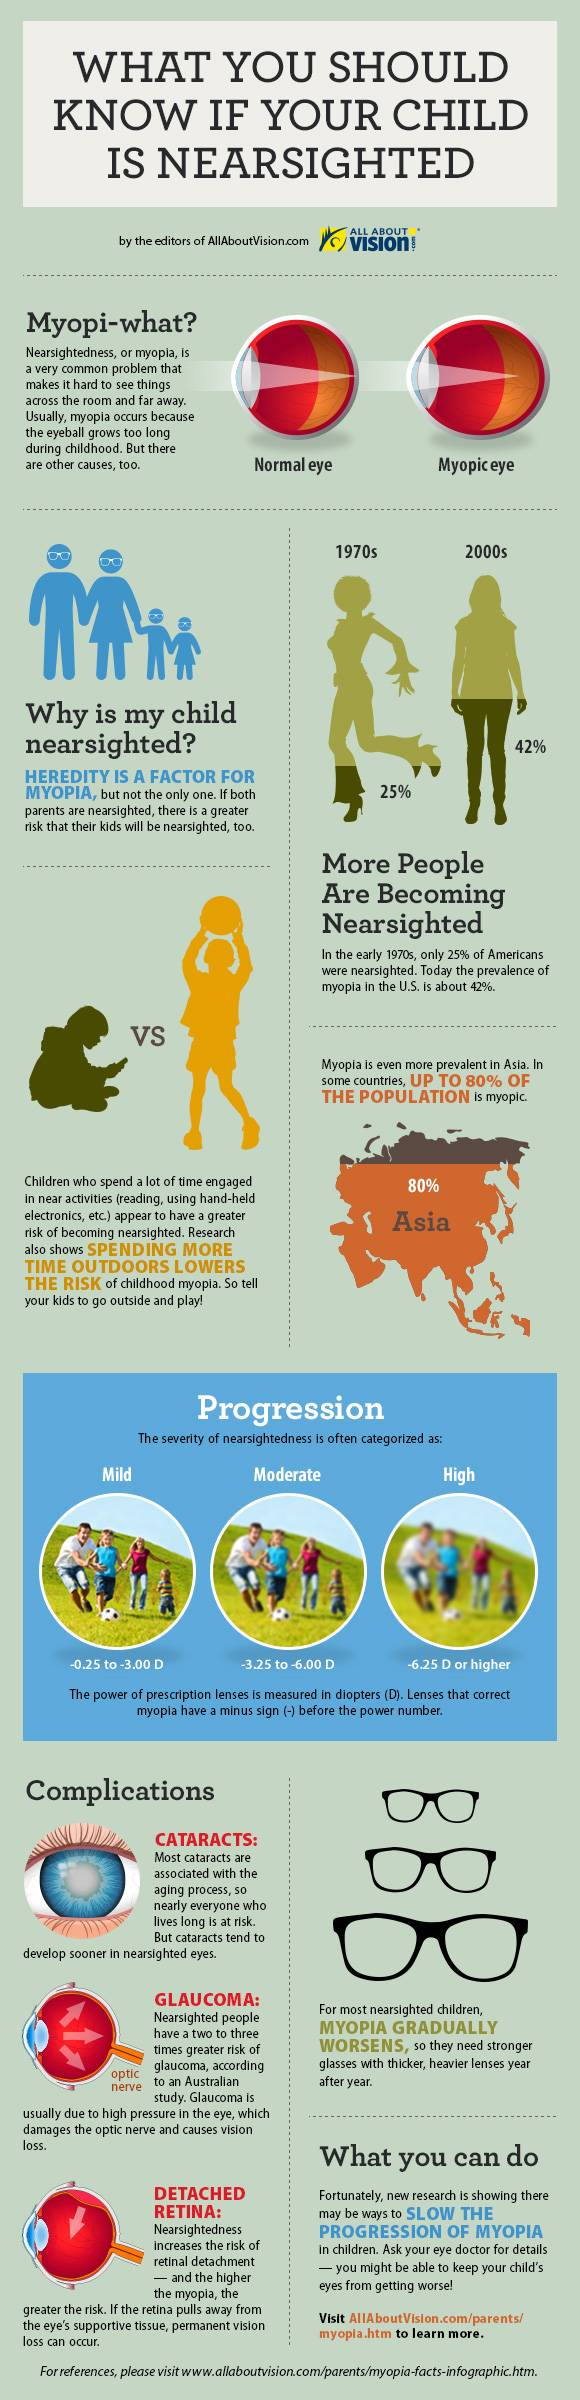 myopia facts infographic for blog